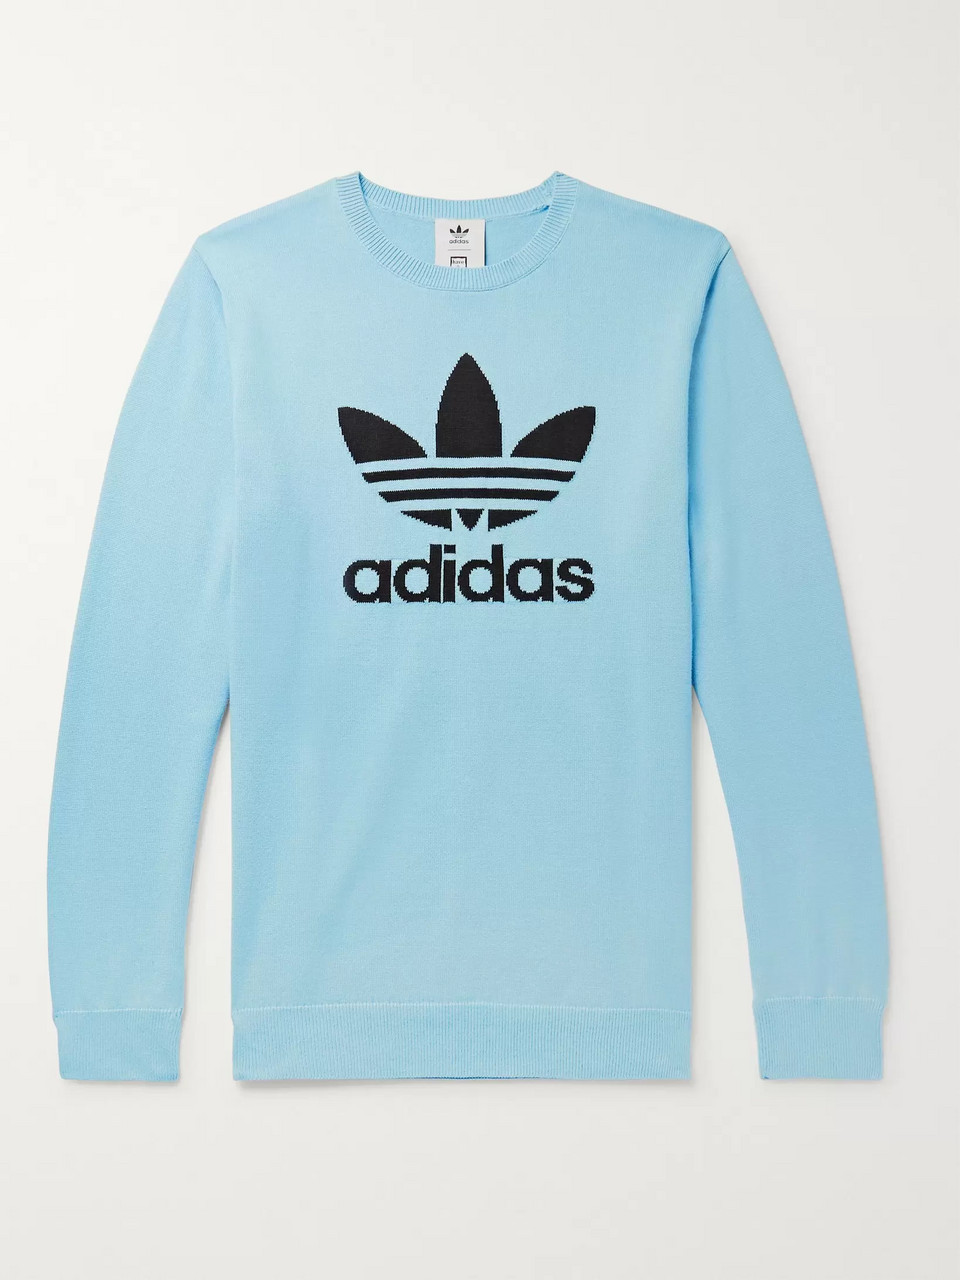 adidas Consortium + Have a Good Time Logo-Intarsia Cotton Sweater